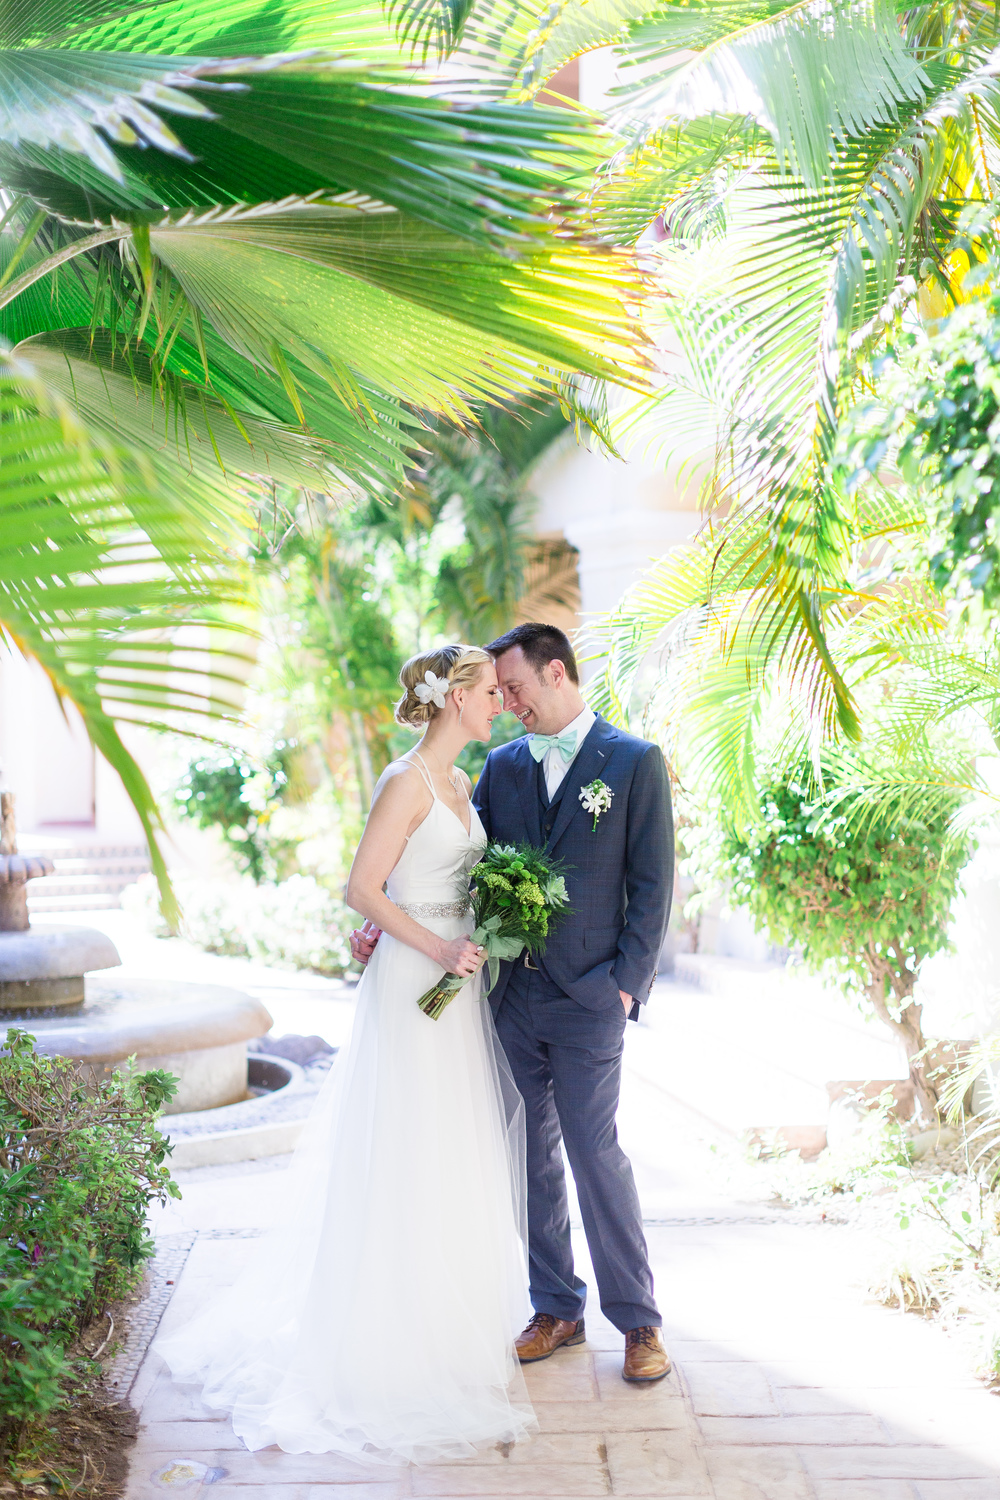 Isla-de-Navidad-Resort-Destination-Wedding-Photographer-TréCreative78of298.jpg